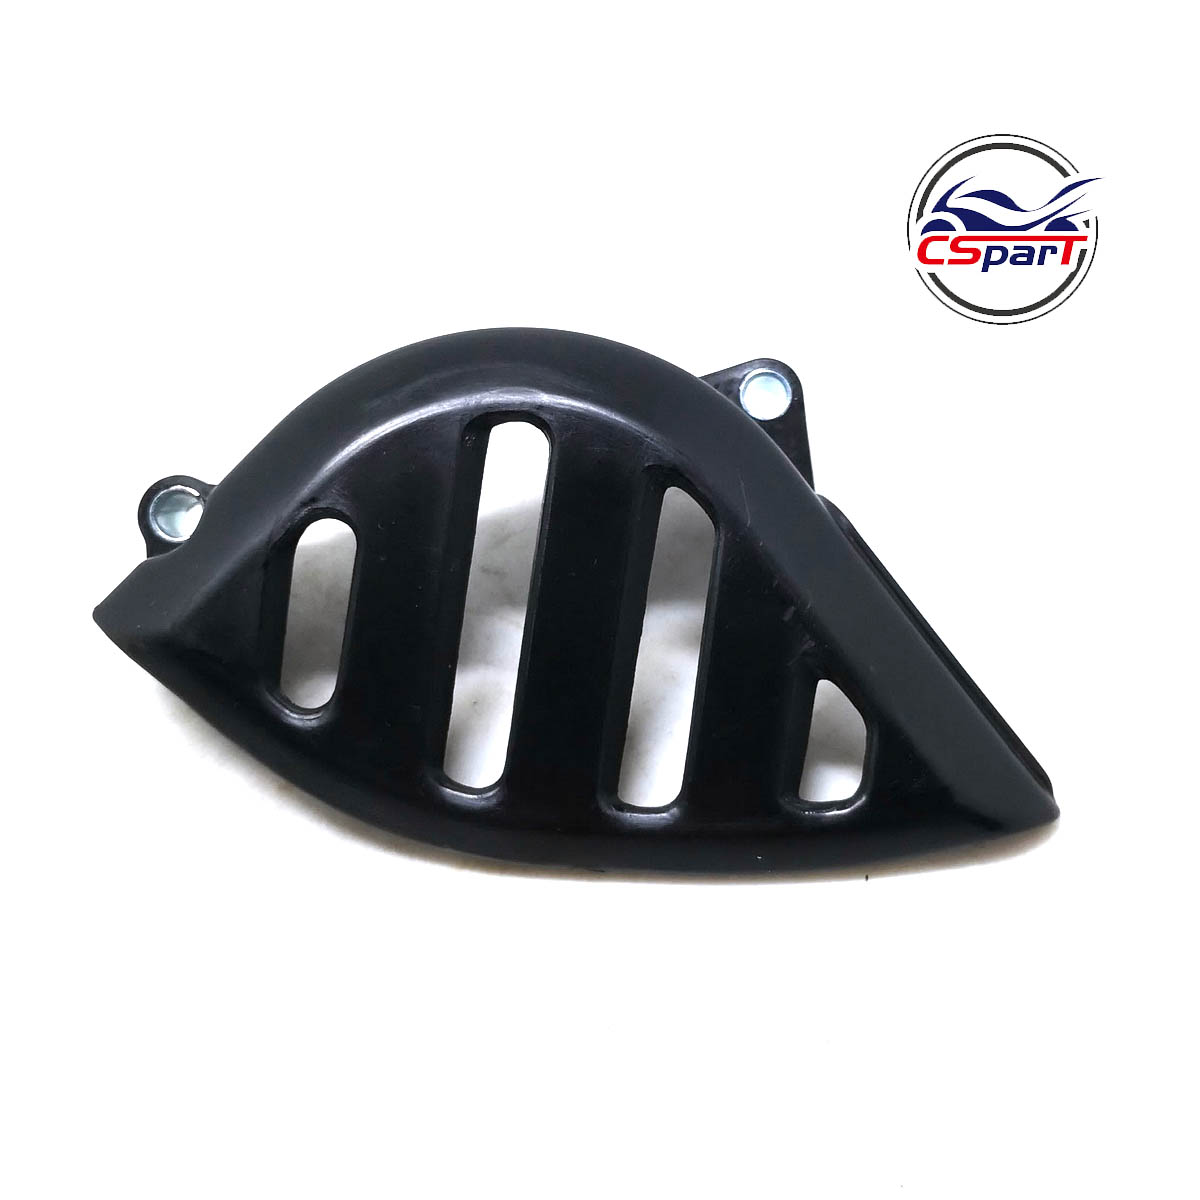 NC250 Front Chain Sprocket Guard Cover For <font><b>ZONGSHEN</b></font> 77MM <font><b>250cc</b></font> KAYO T6 K6 BSE J5 RX3 ZS250GY-3 4 Valves <font><b>Parts</b></font> image